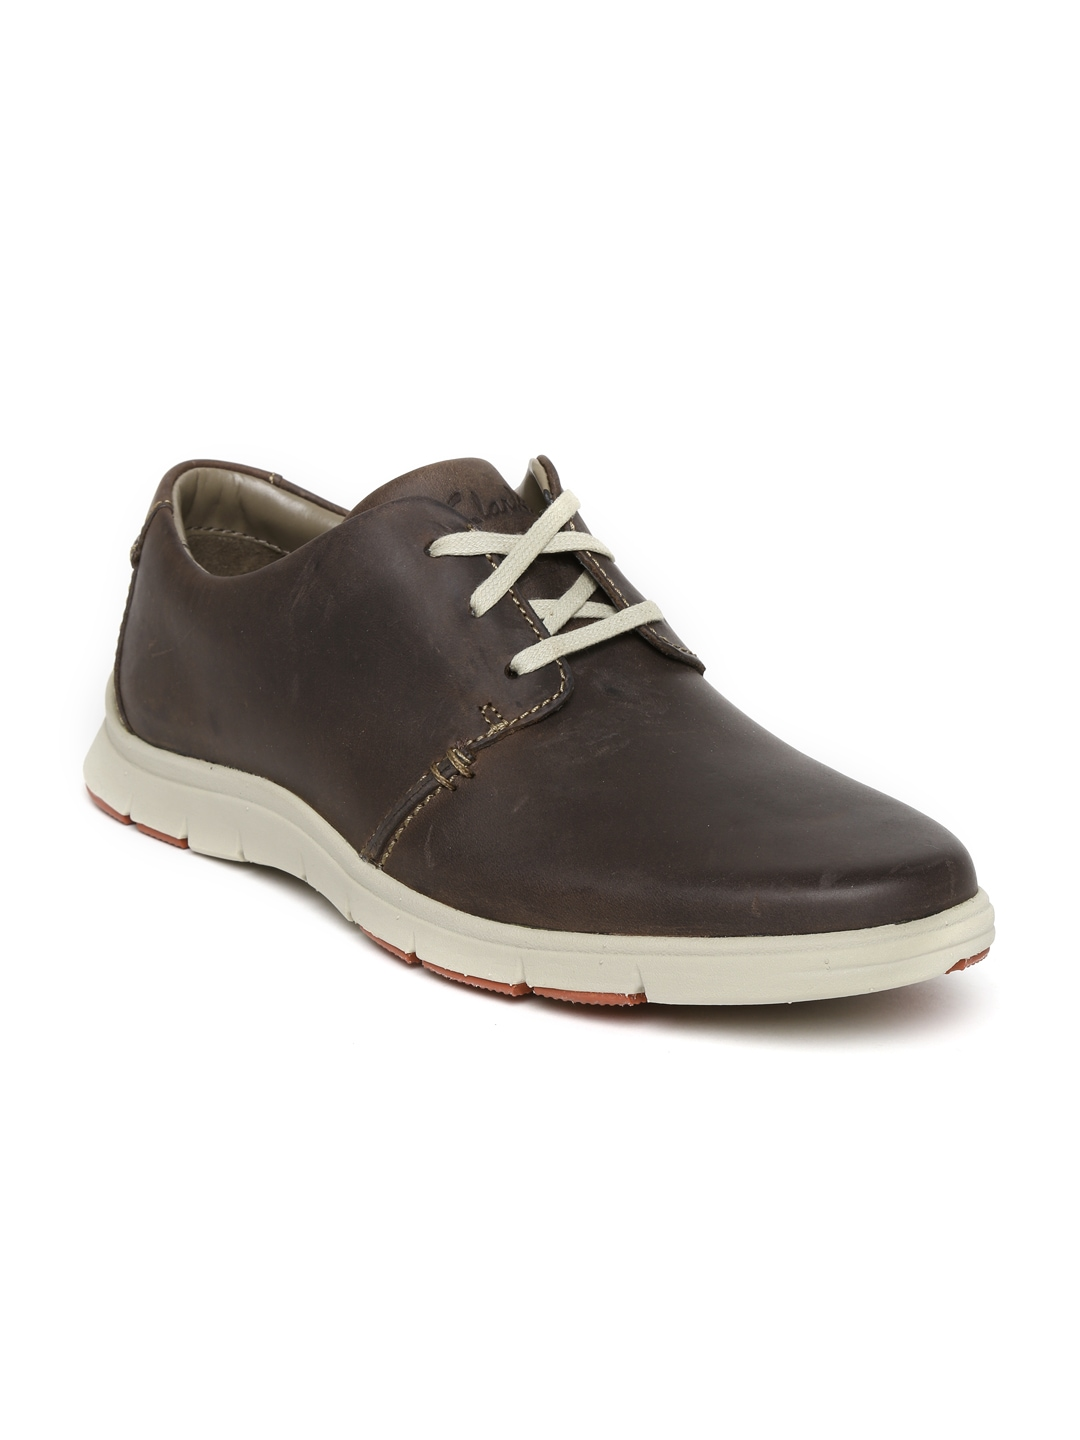 myntra clarks brown leather casual shoes 391410 buy